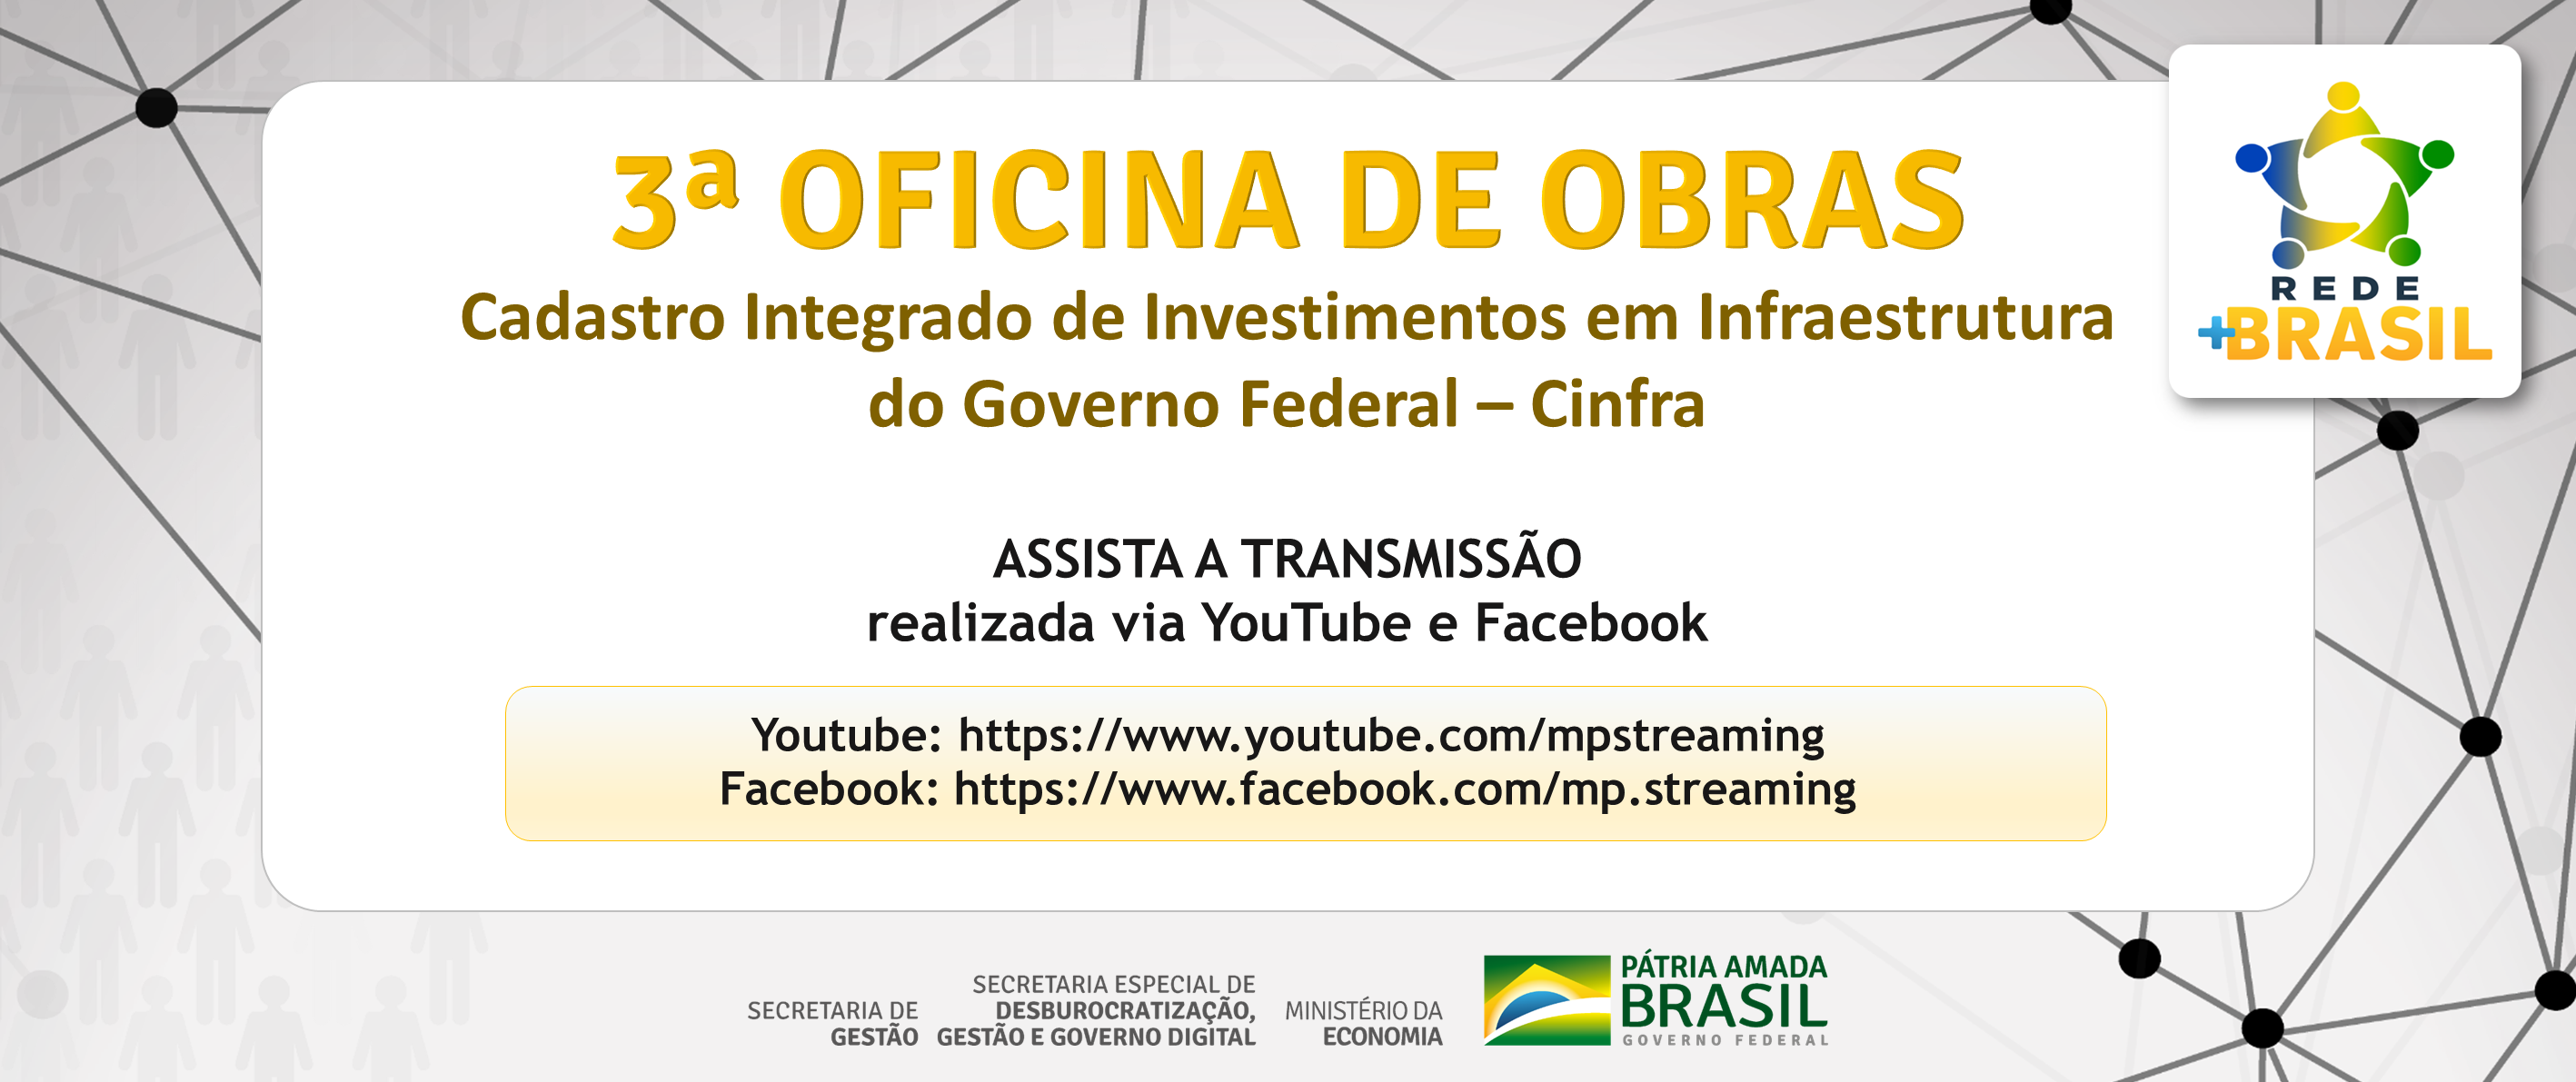 Assista a transmissão do YouTube